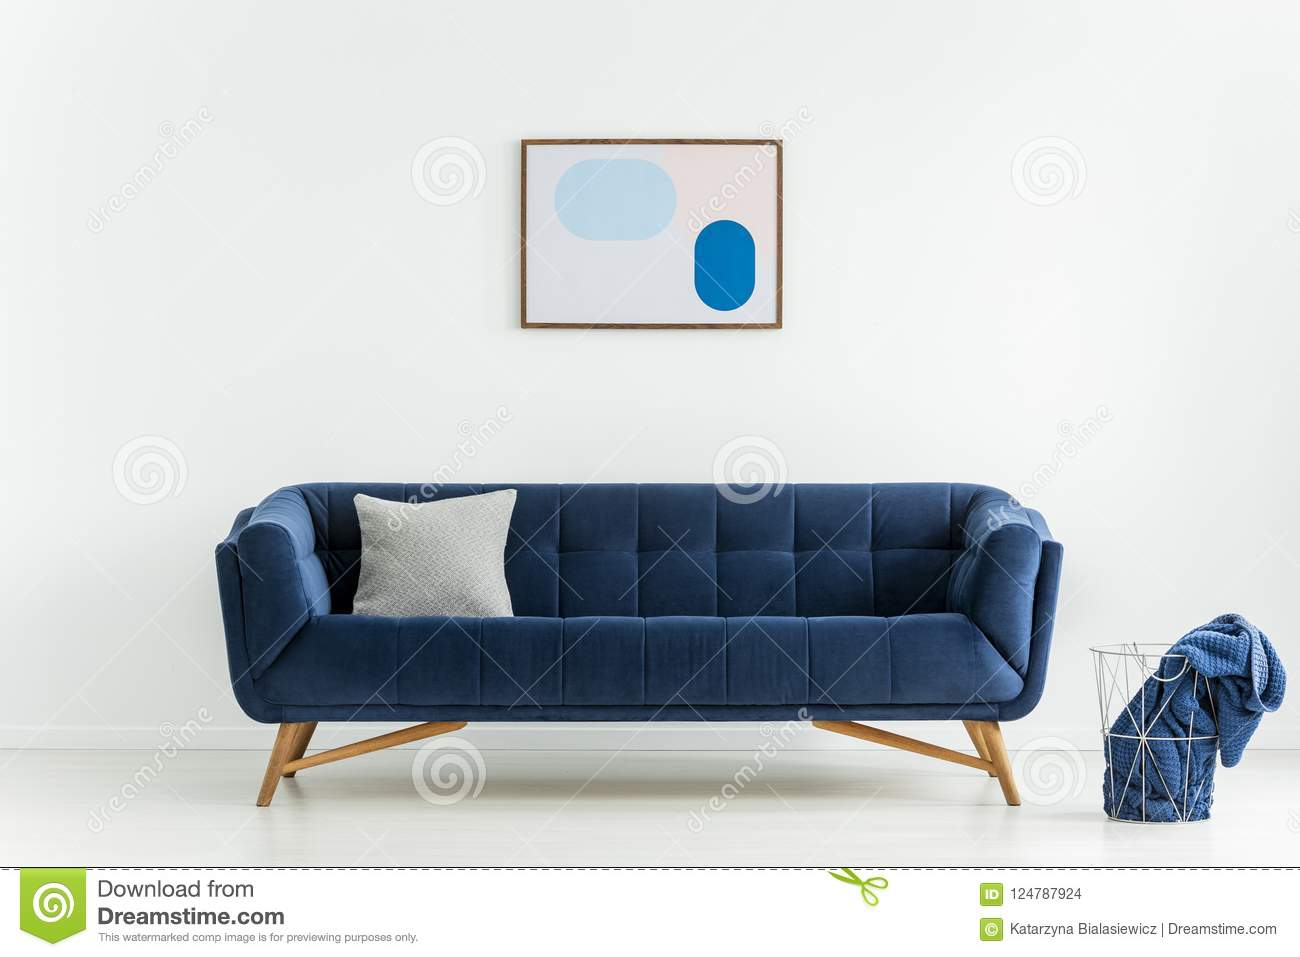 Poster above blue sofa with cushion in white living room interior with blanket in basket. Real photo